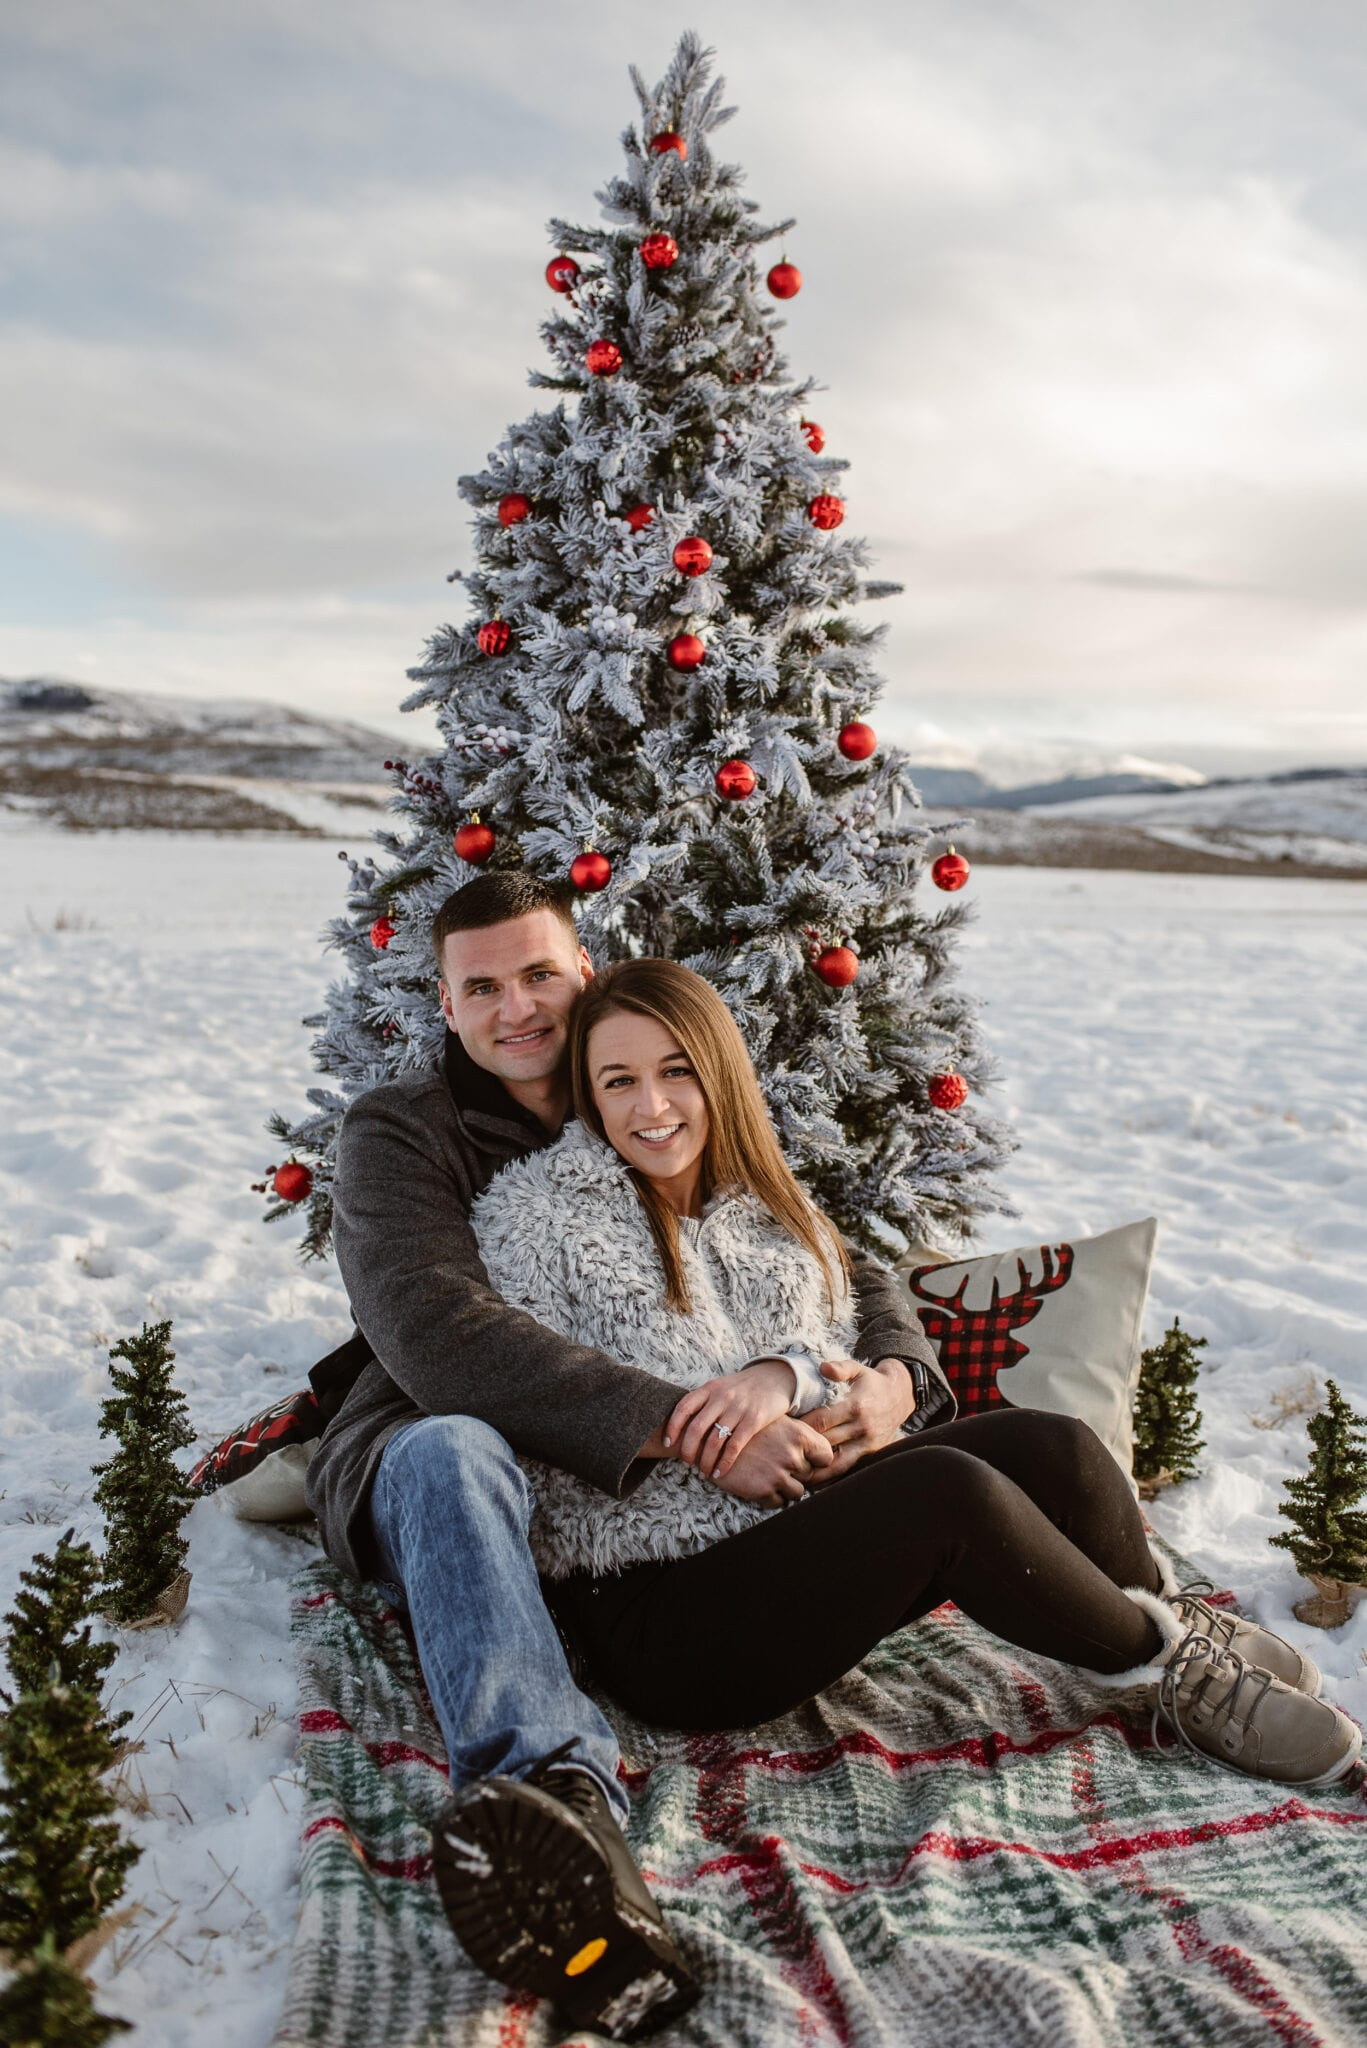 Christmas tree proposal in the snow